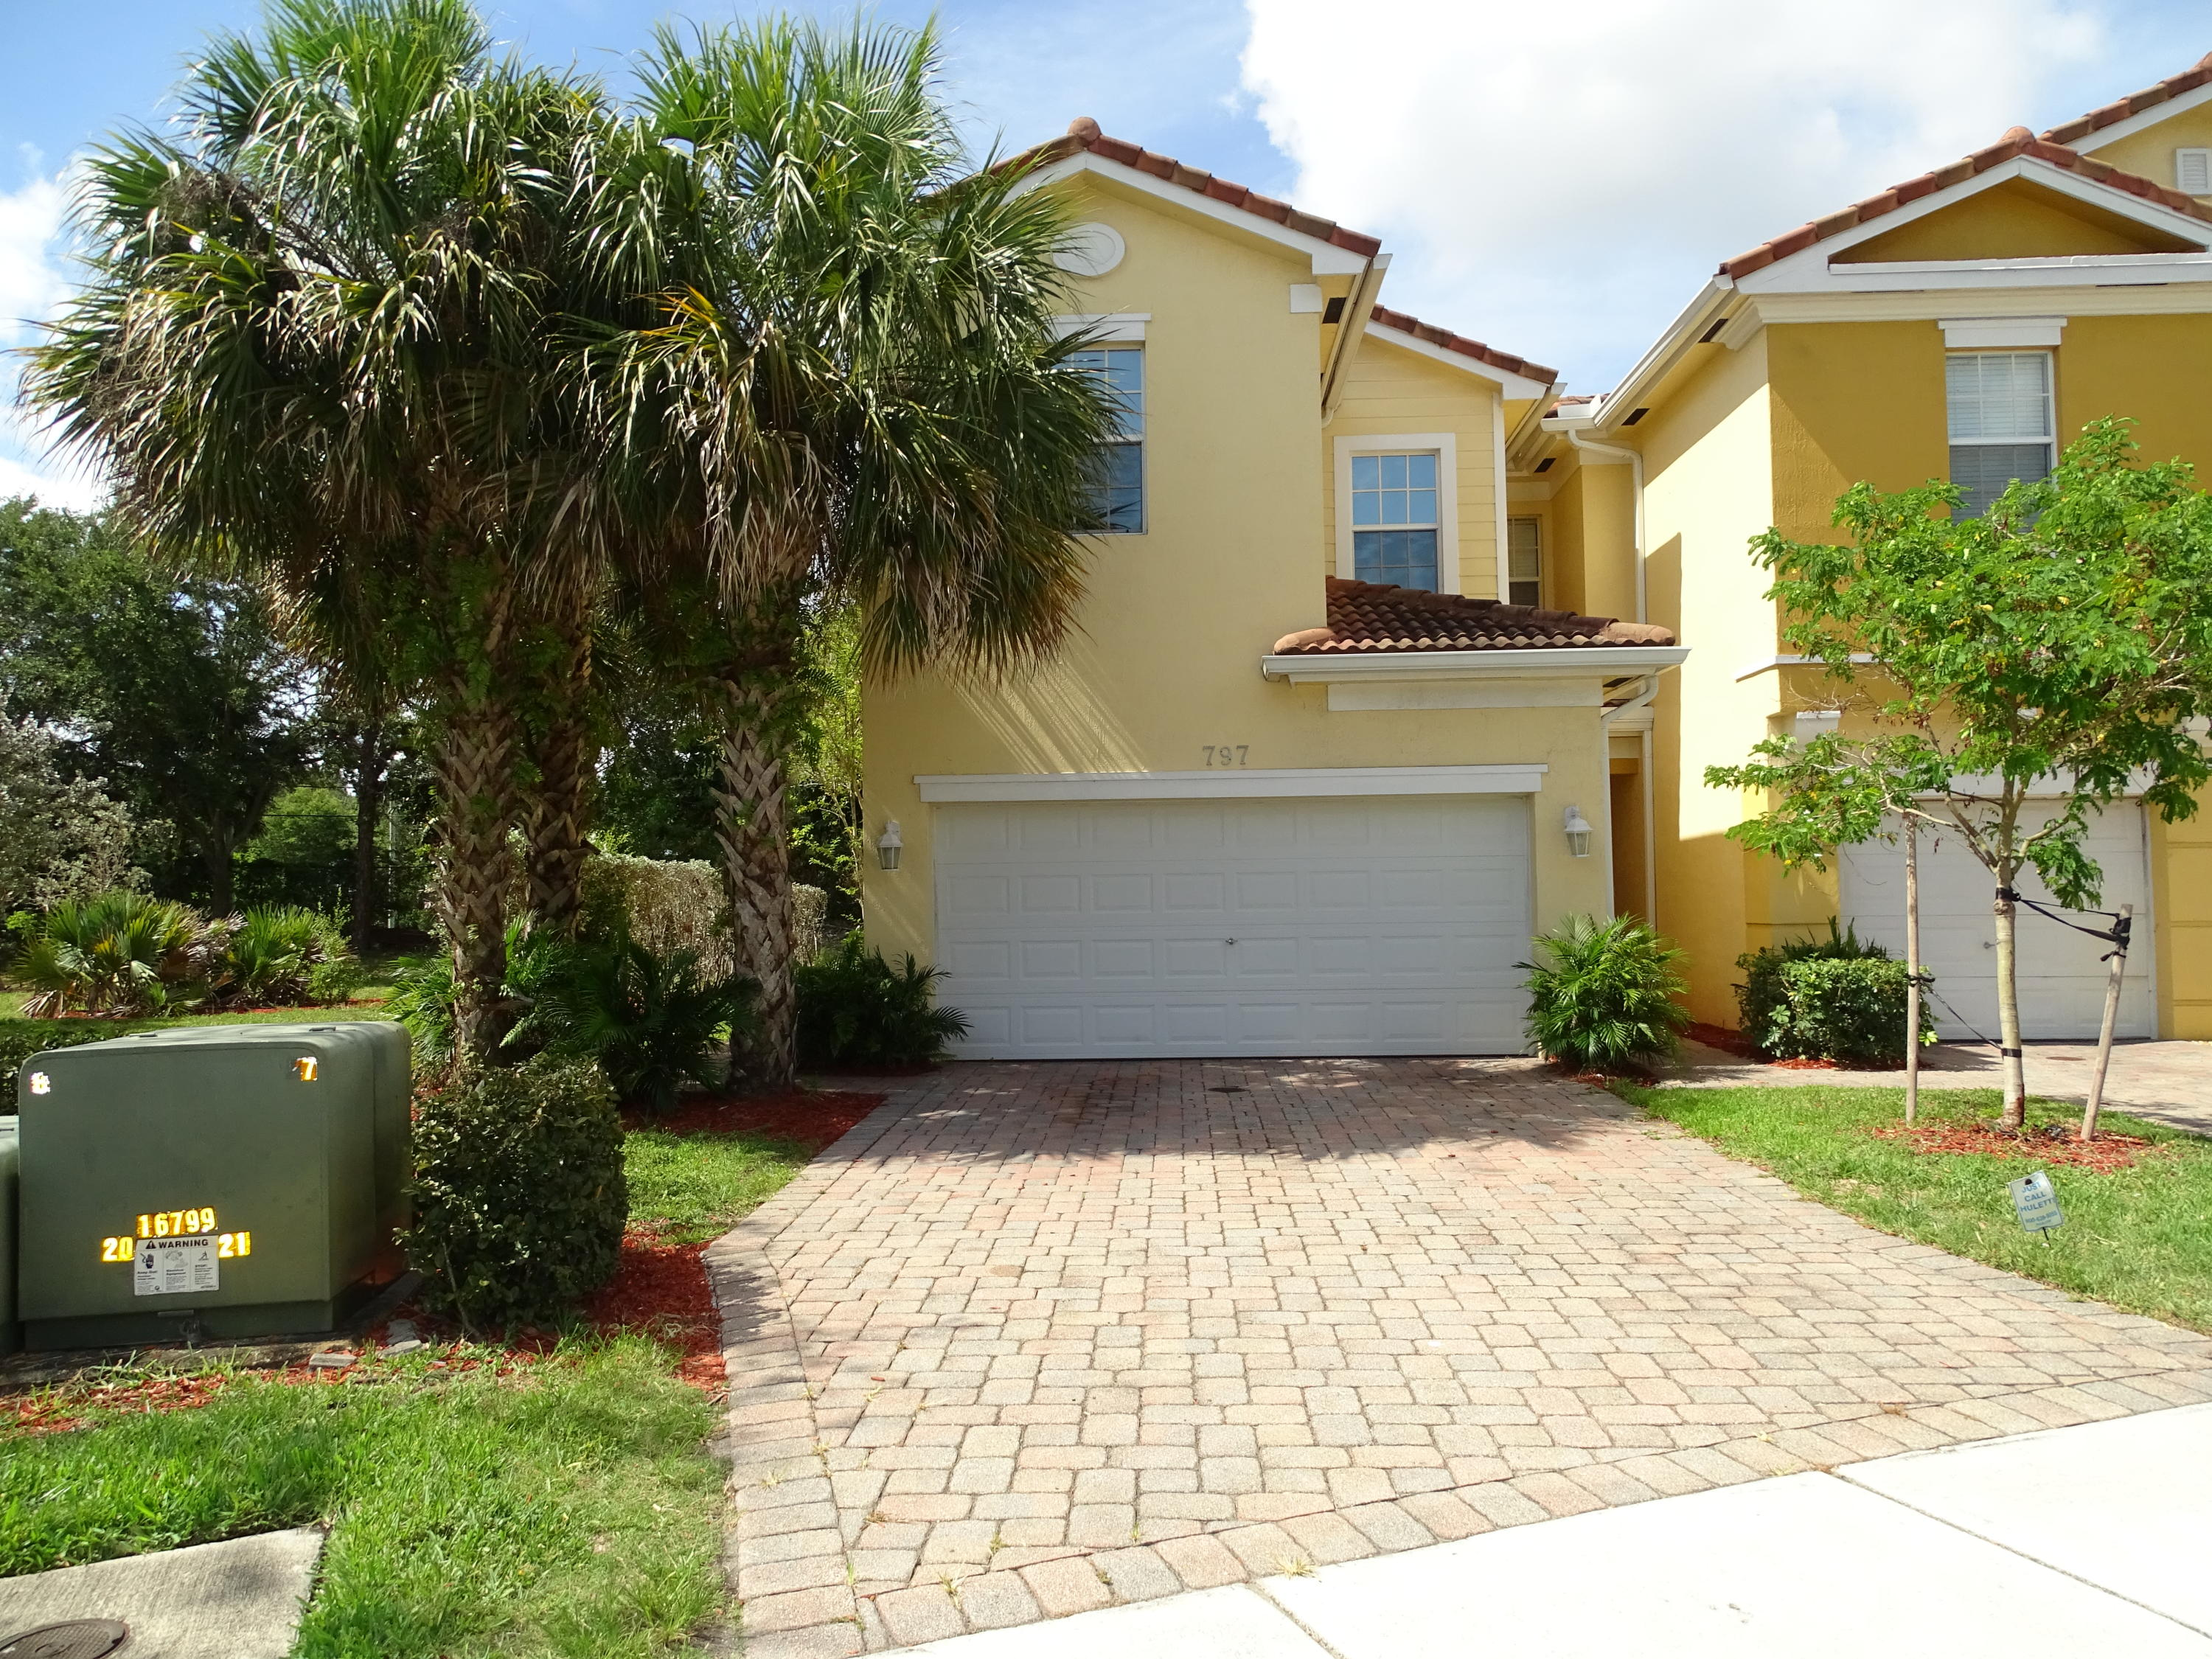 797 Pipers Cay Drive - 33415 - FL - West Palm Beach